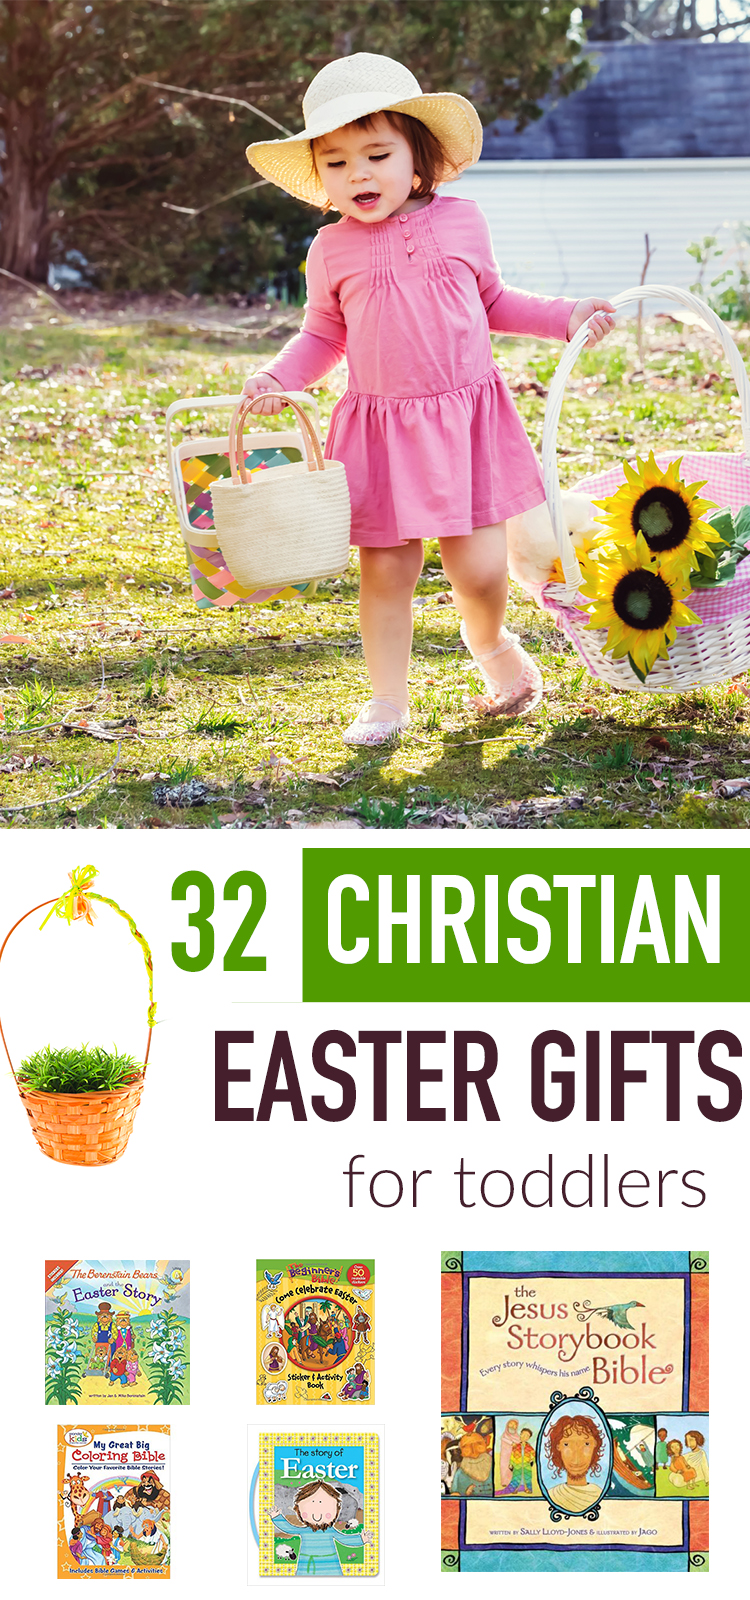 32 cute christian easter gifts for toddlers christ centered holidays easter baskets toddlers easter ideas toddlers easter gifts for toddlers easter gifts toddlers negle Gallery